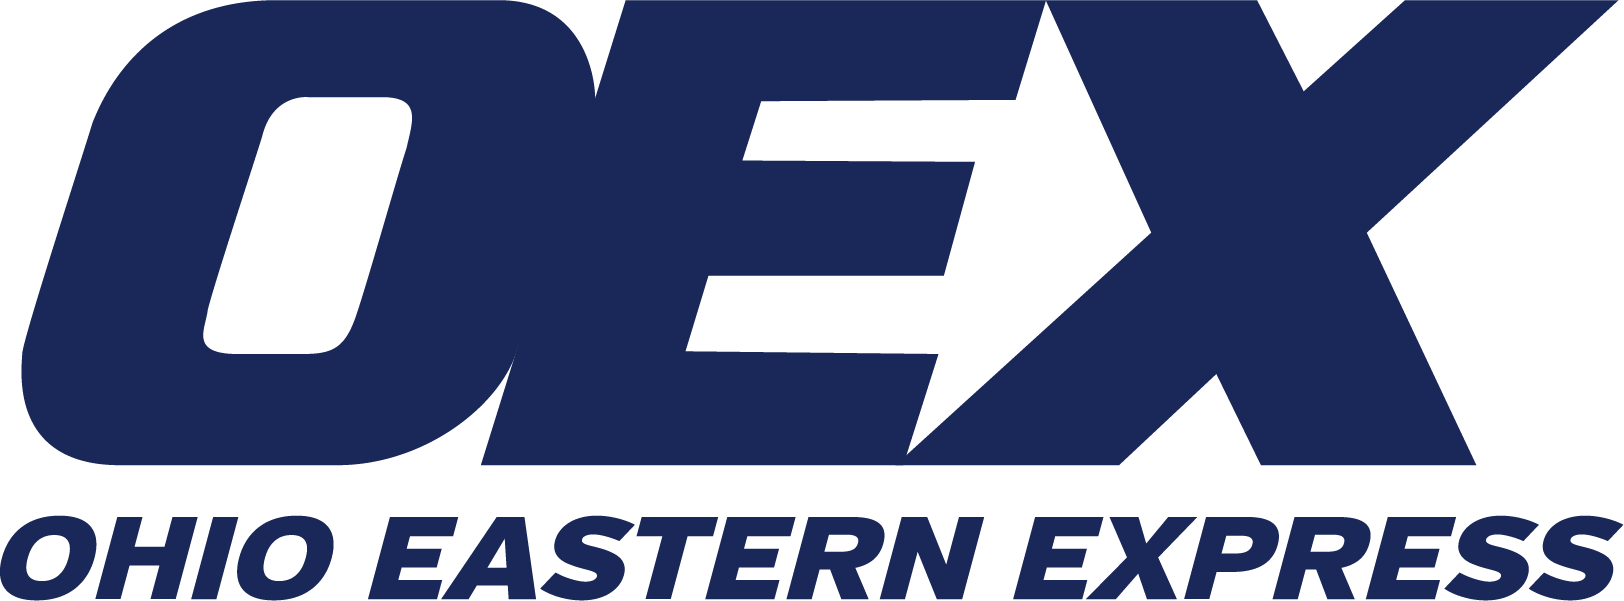 OHIO EASTERN EXPRESS